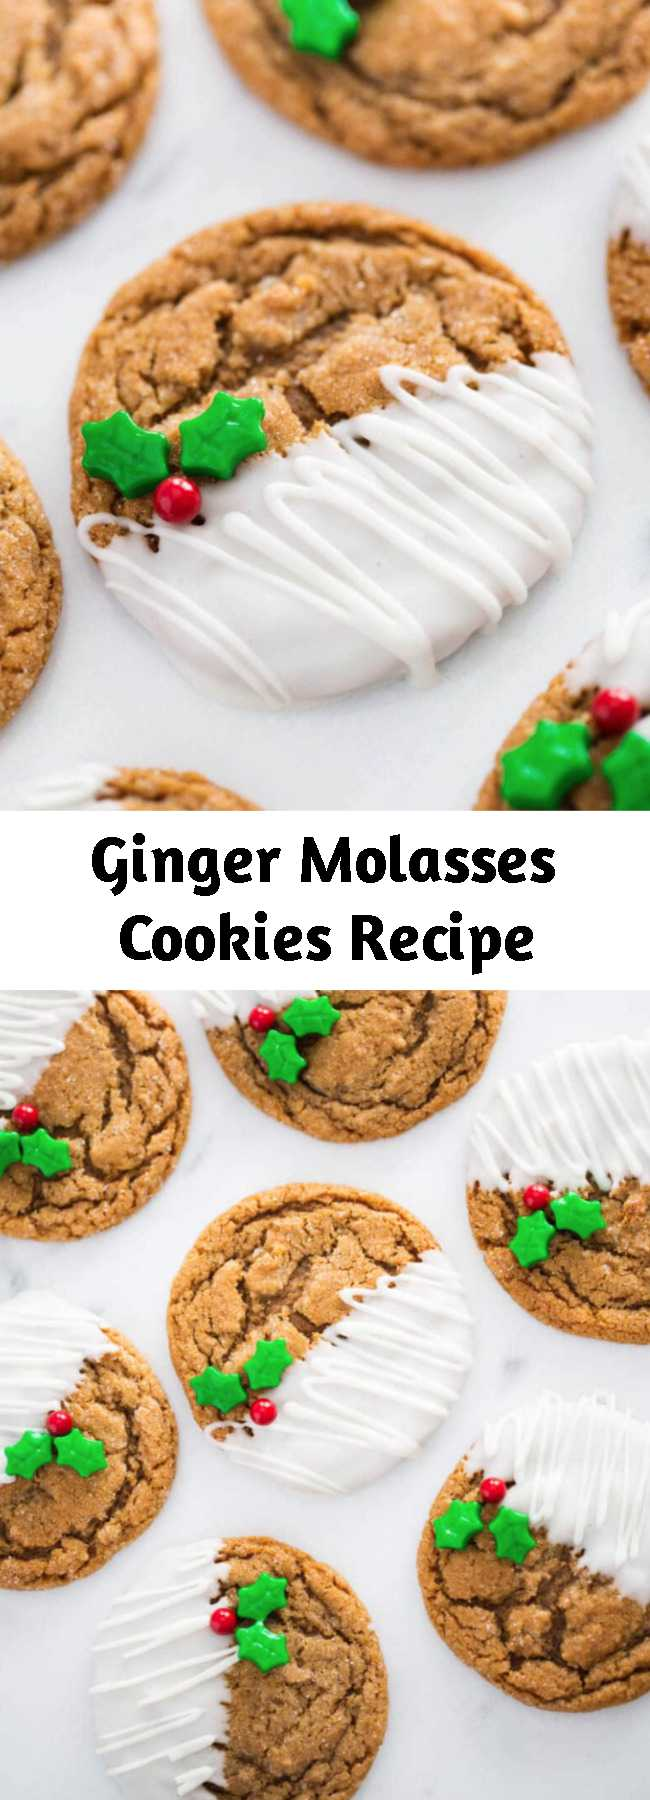 Ginger Molasses Cookies Recipe - Molasses cookies that are soft and chewy on the inside and crisp around the edges. Full of delicious ginger flavor and taste just like Christmas! Drizzle or dip in white chocolate for the ultimate holiday cookie! #cookies #cookierecipes #christmas #christmasrecipes #cookiedecorating #cookieart #recipe